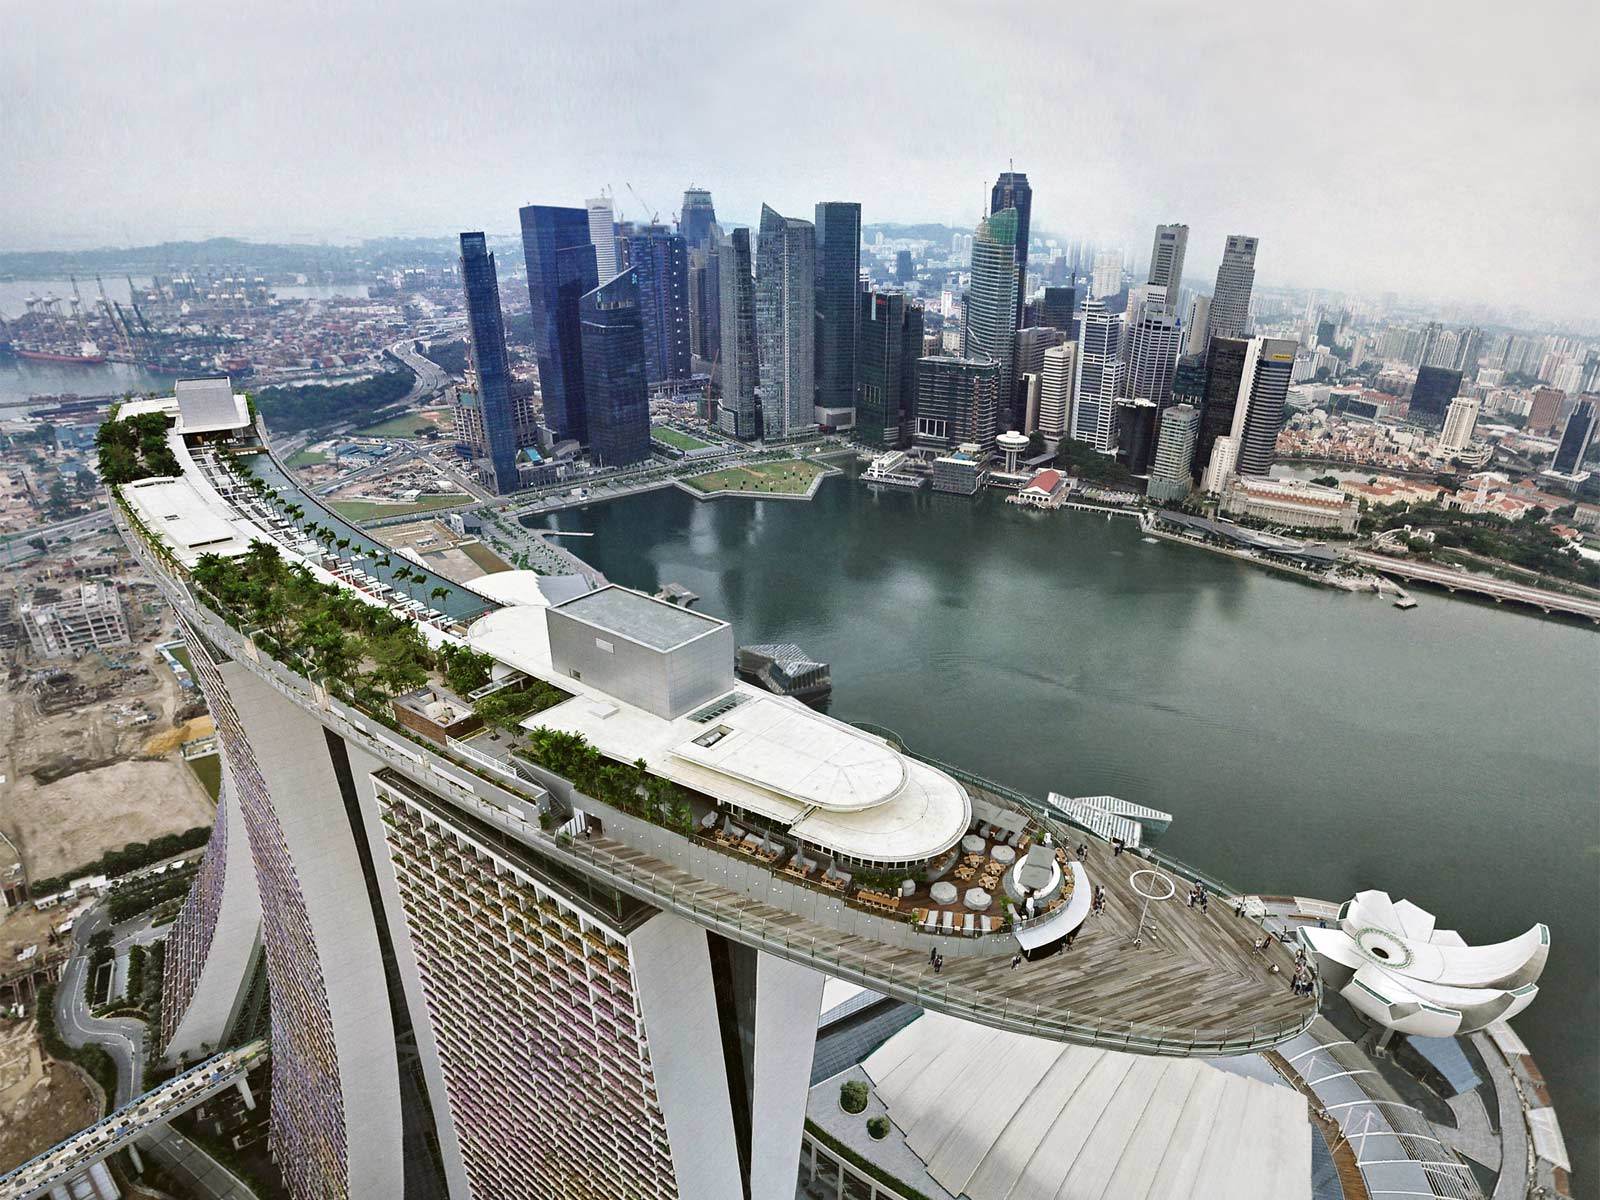 Bucket list 1 go swimming at the edge of marina bay sands infinity pool hubert cu - Singapore marina bay sands infinity pool ...